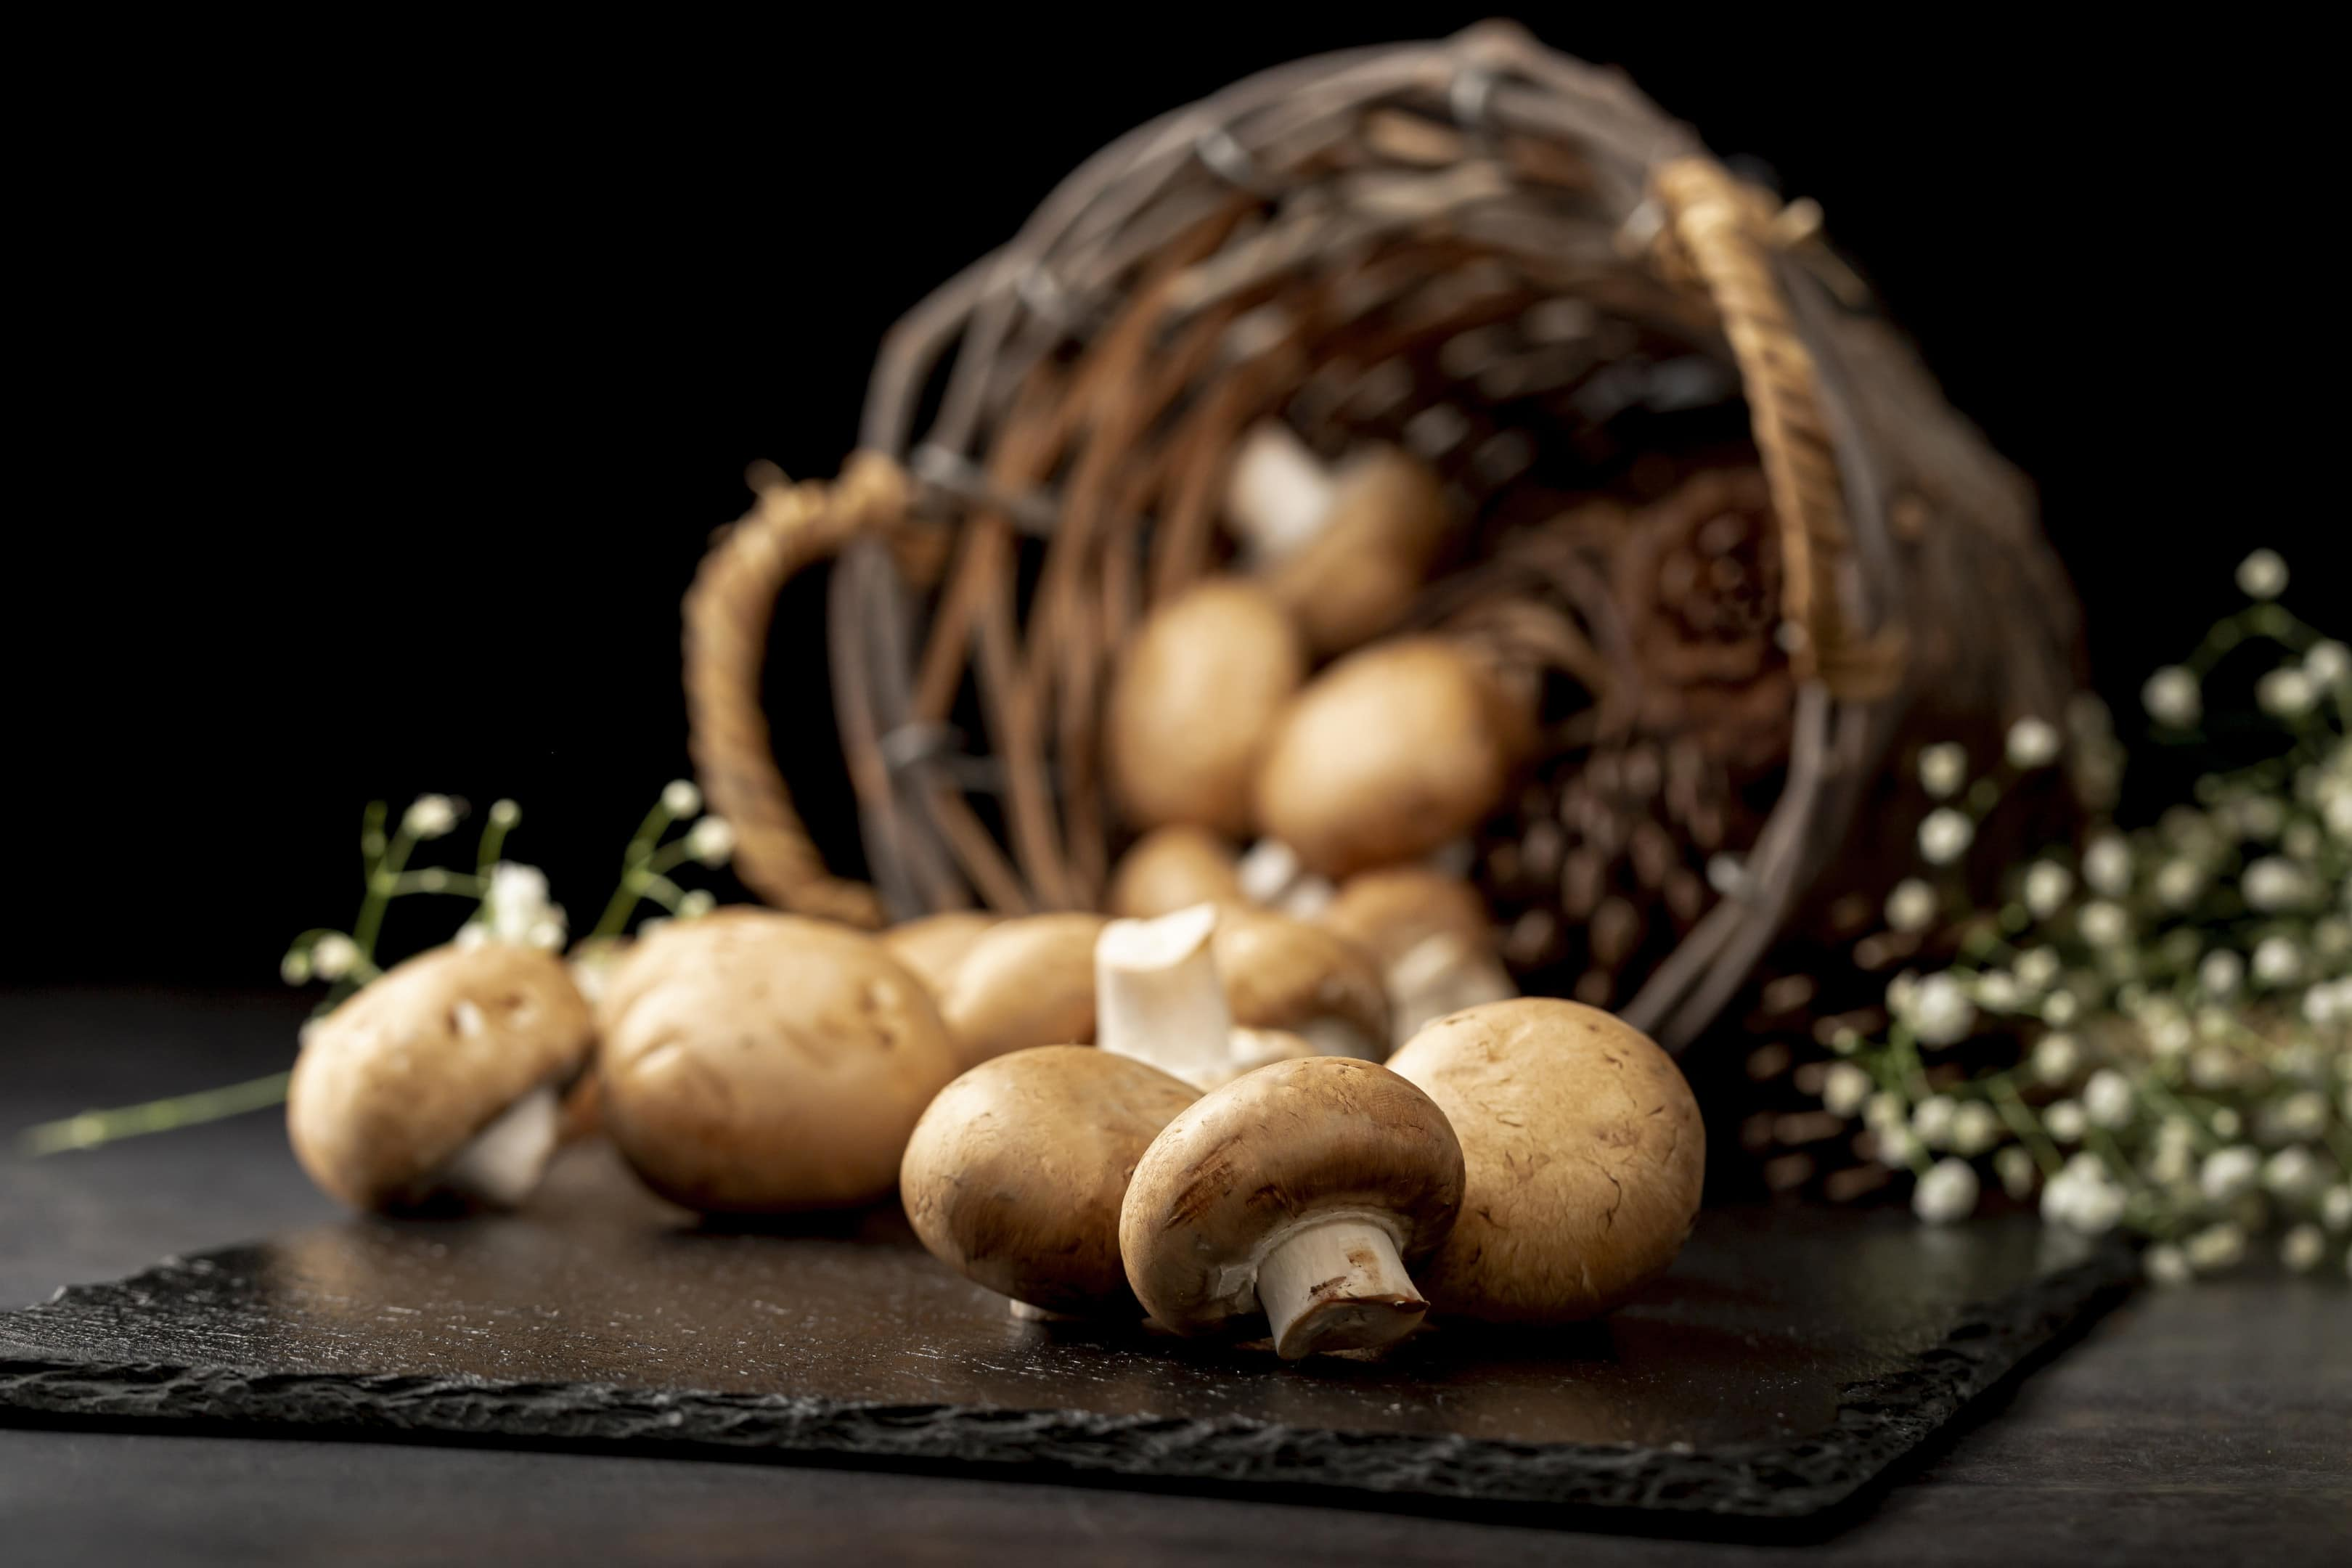 Mushrooms on black stone plate with brown knitted basket